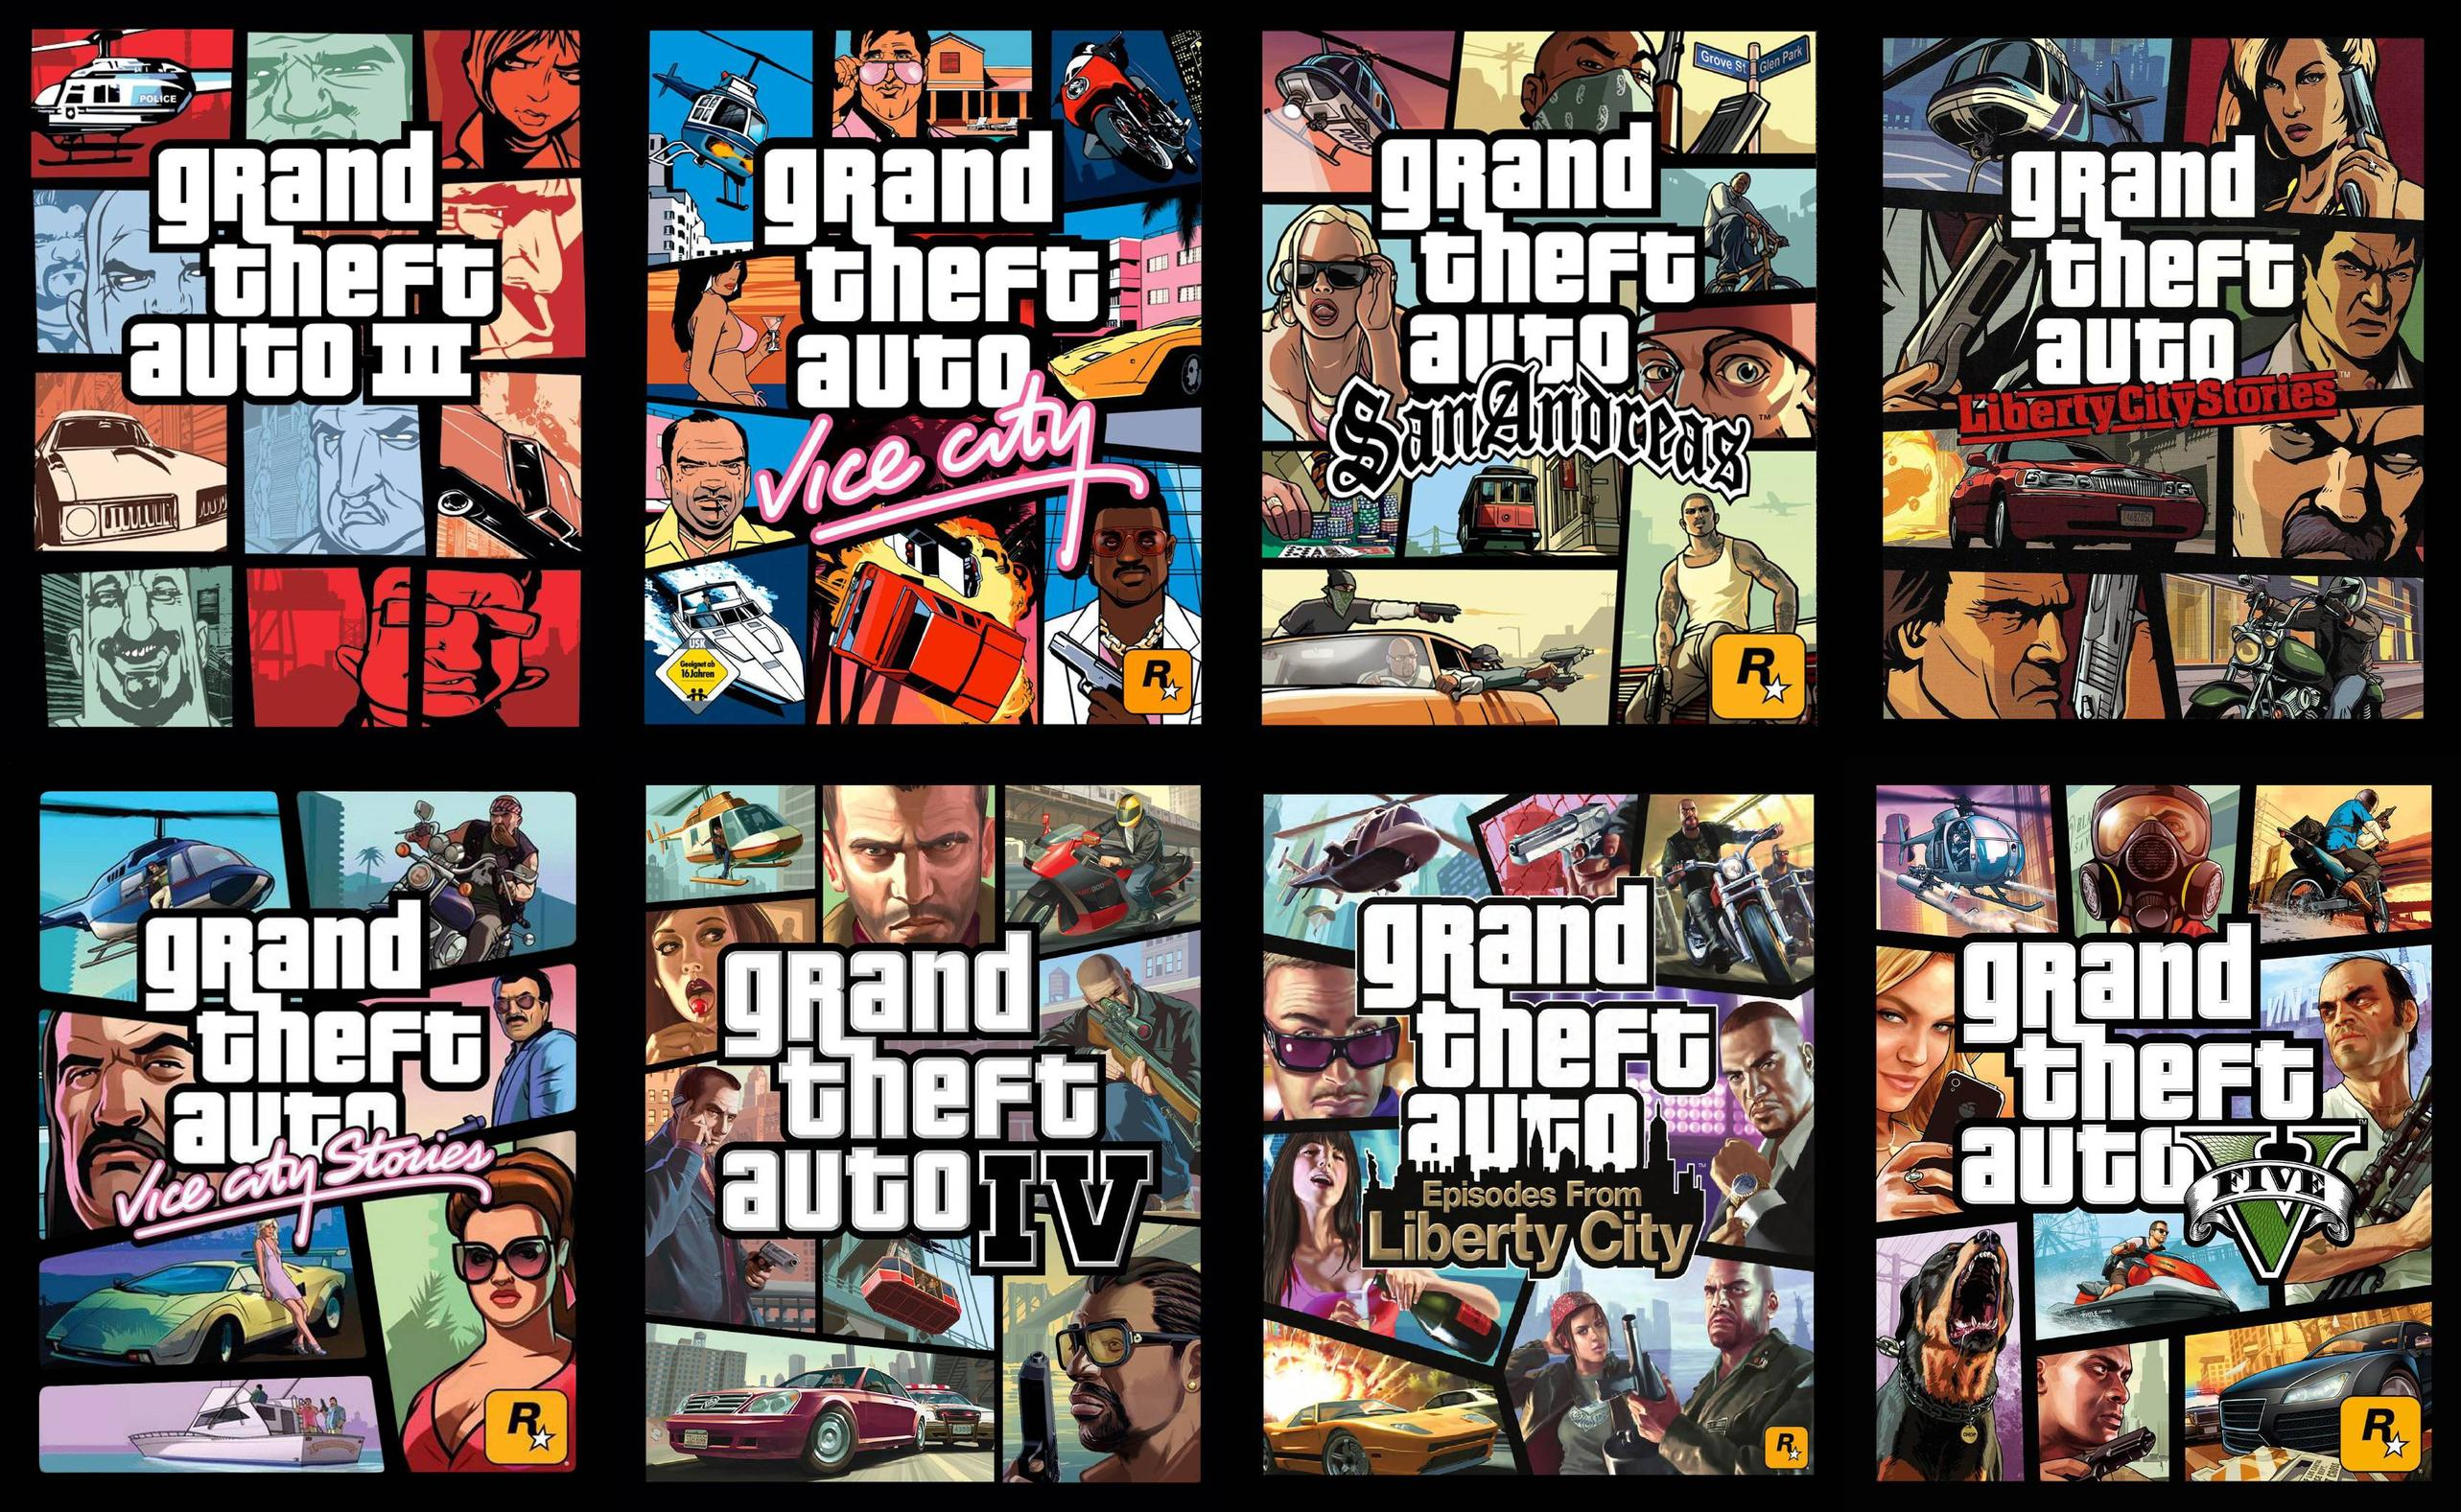 Gta 6 system requirements for windows 7 | Grand Theft Auto V